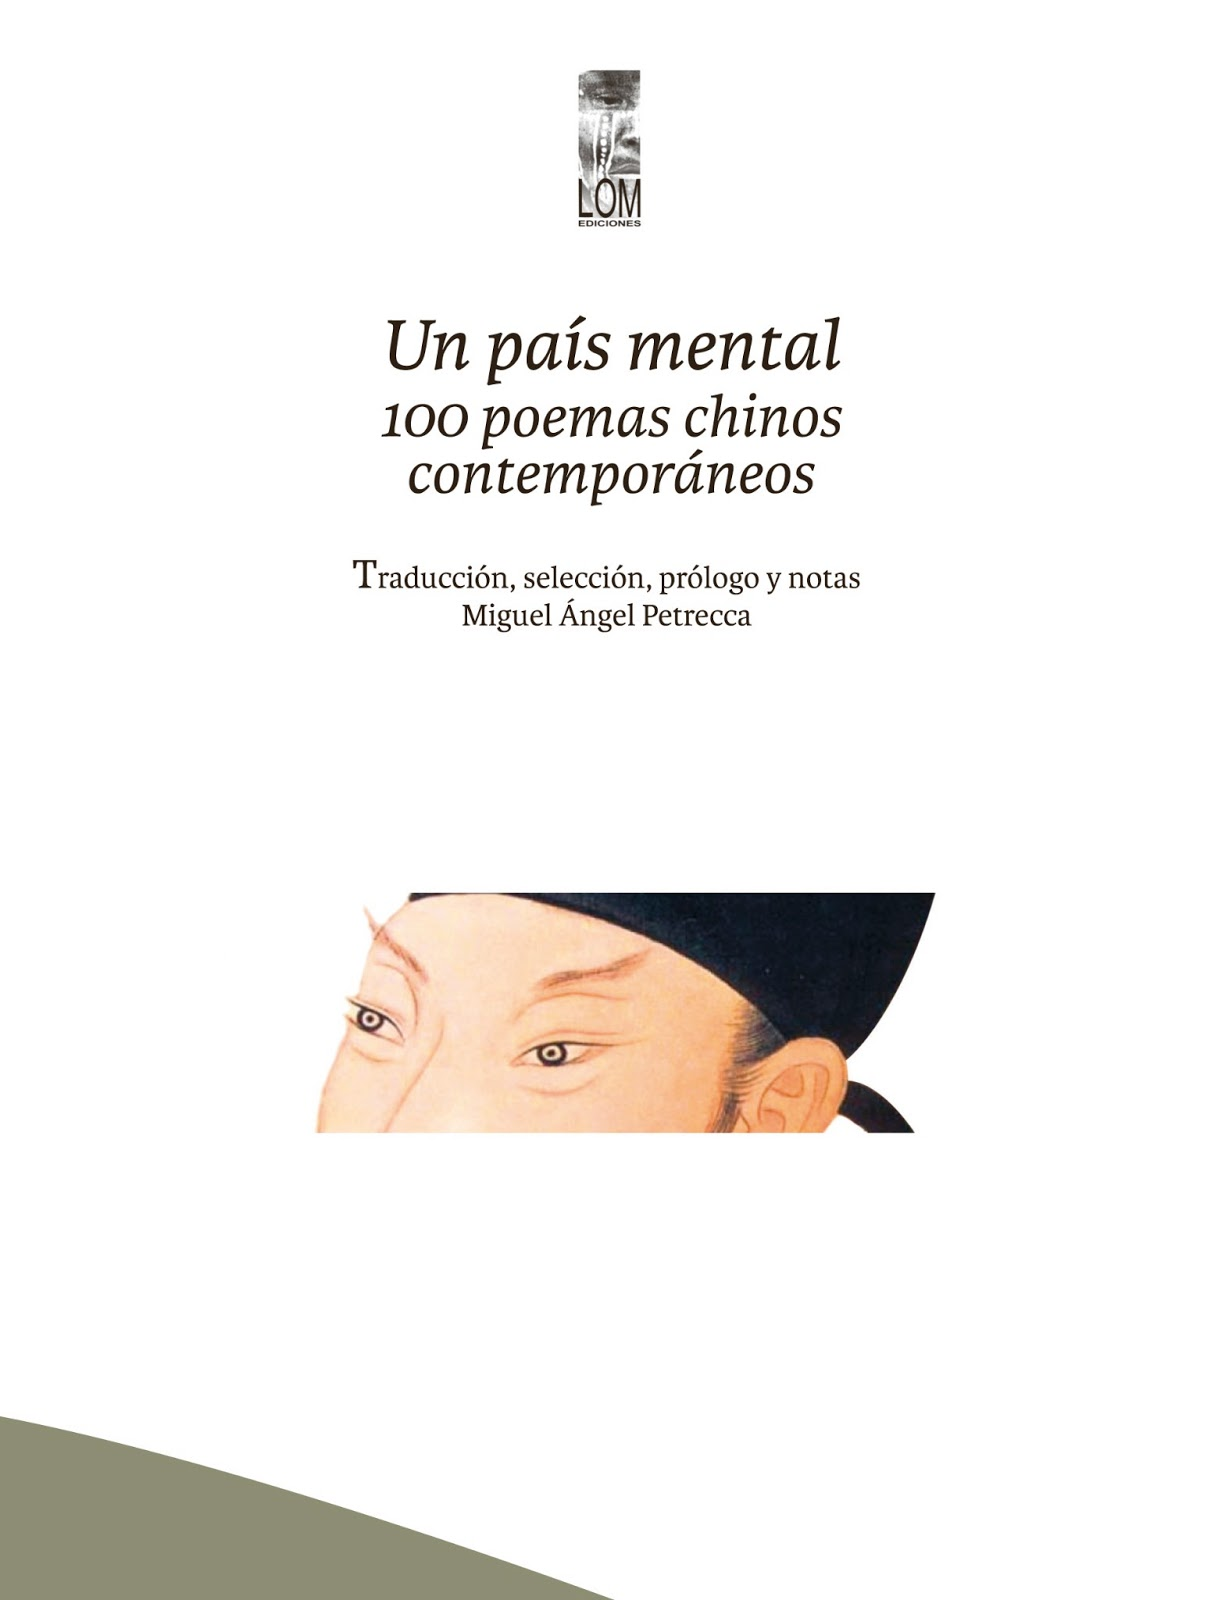 Un país mental. 100 poemas chinos contemporáneos (Lom, 2013)